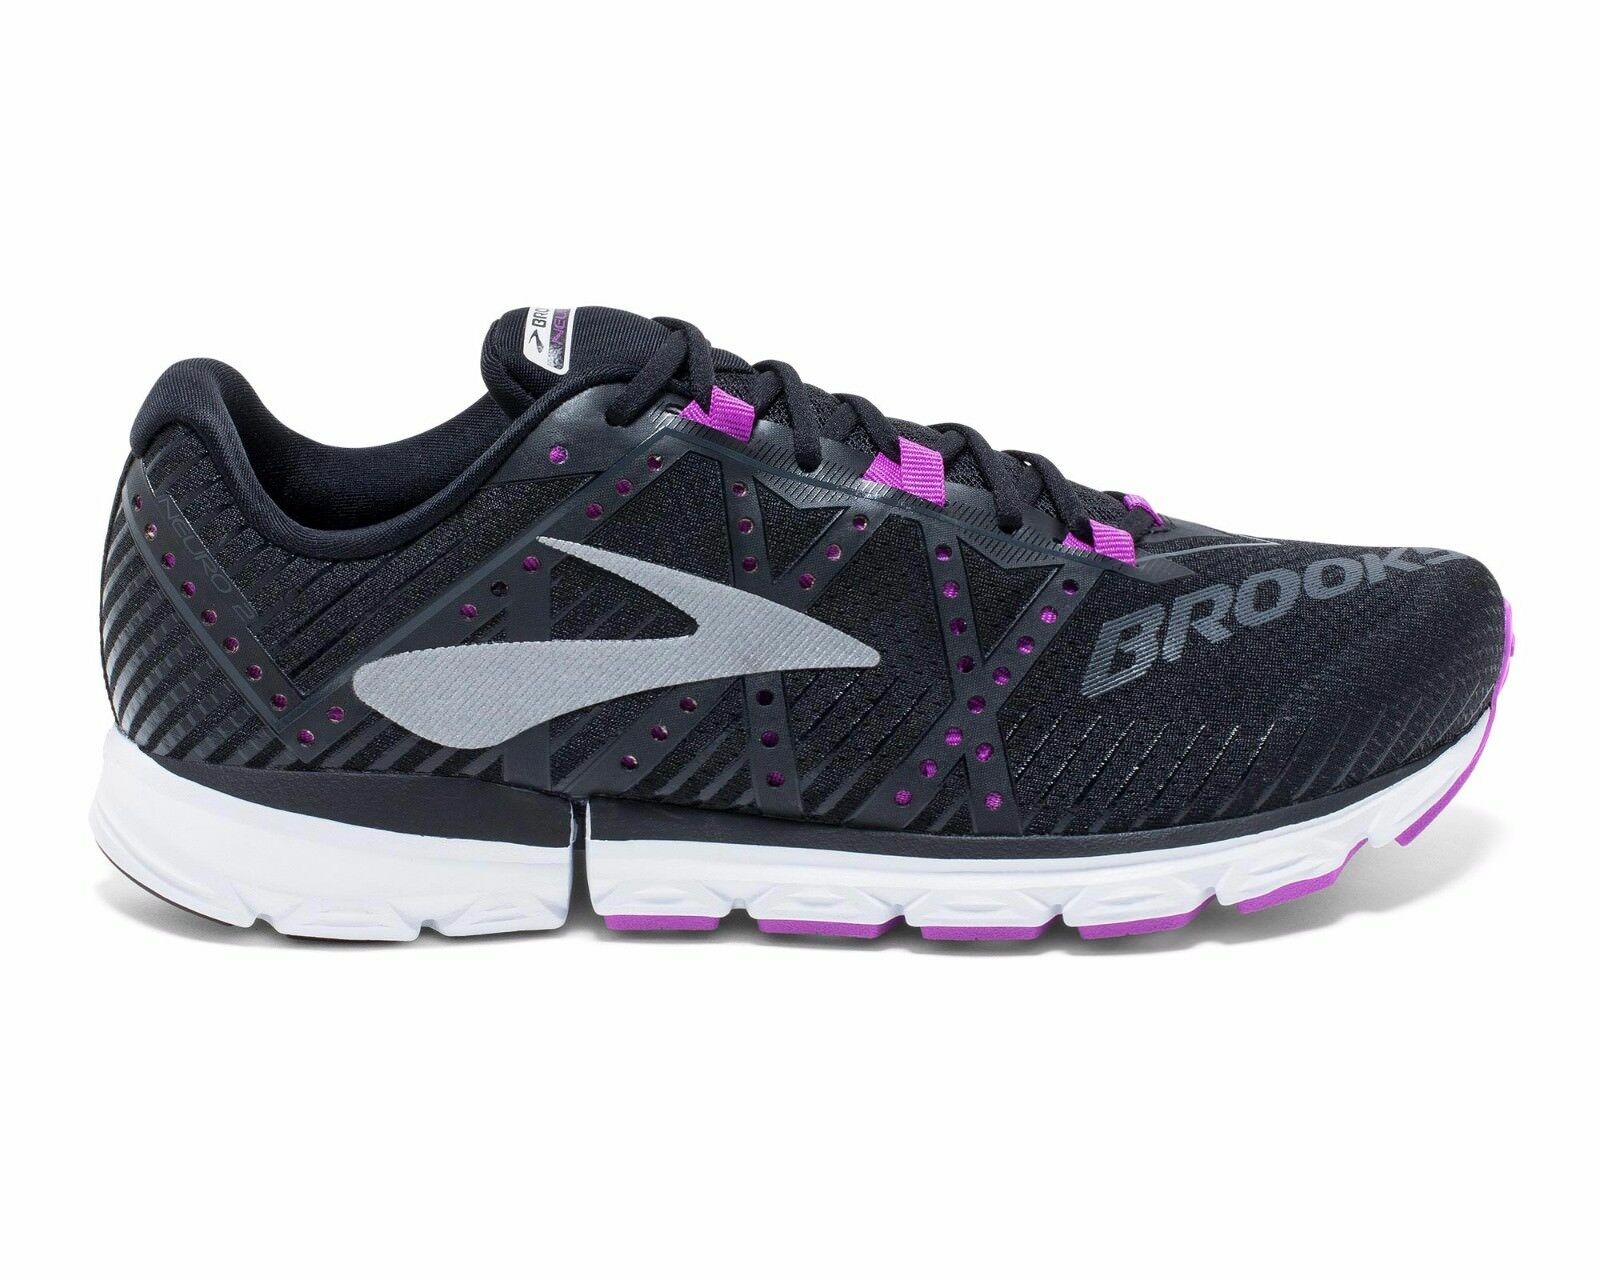 * NEW * Brooks Neuro 2 Womens Cushioned Running Shoe (B) (099)